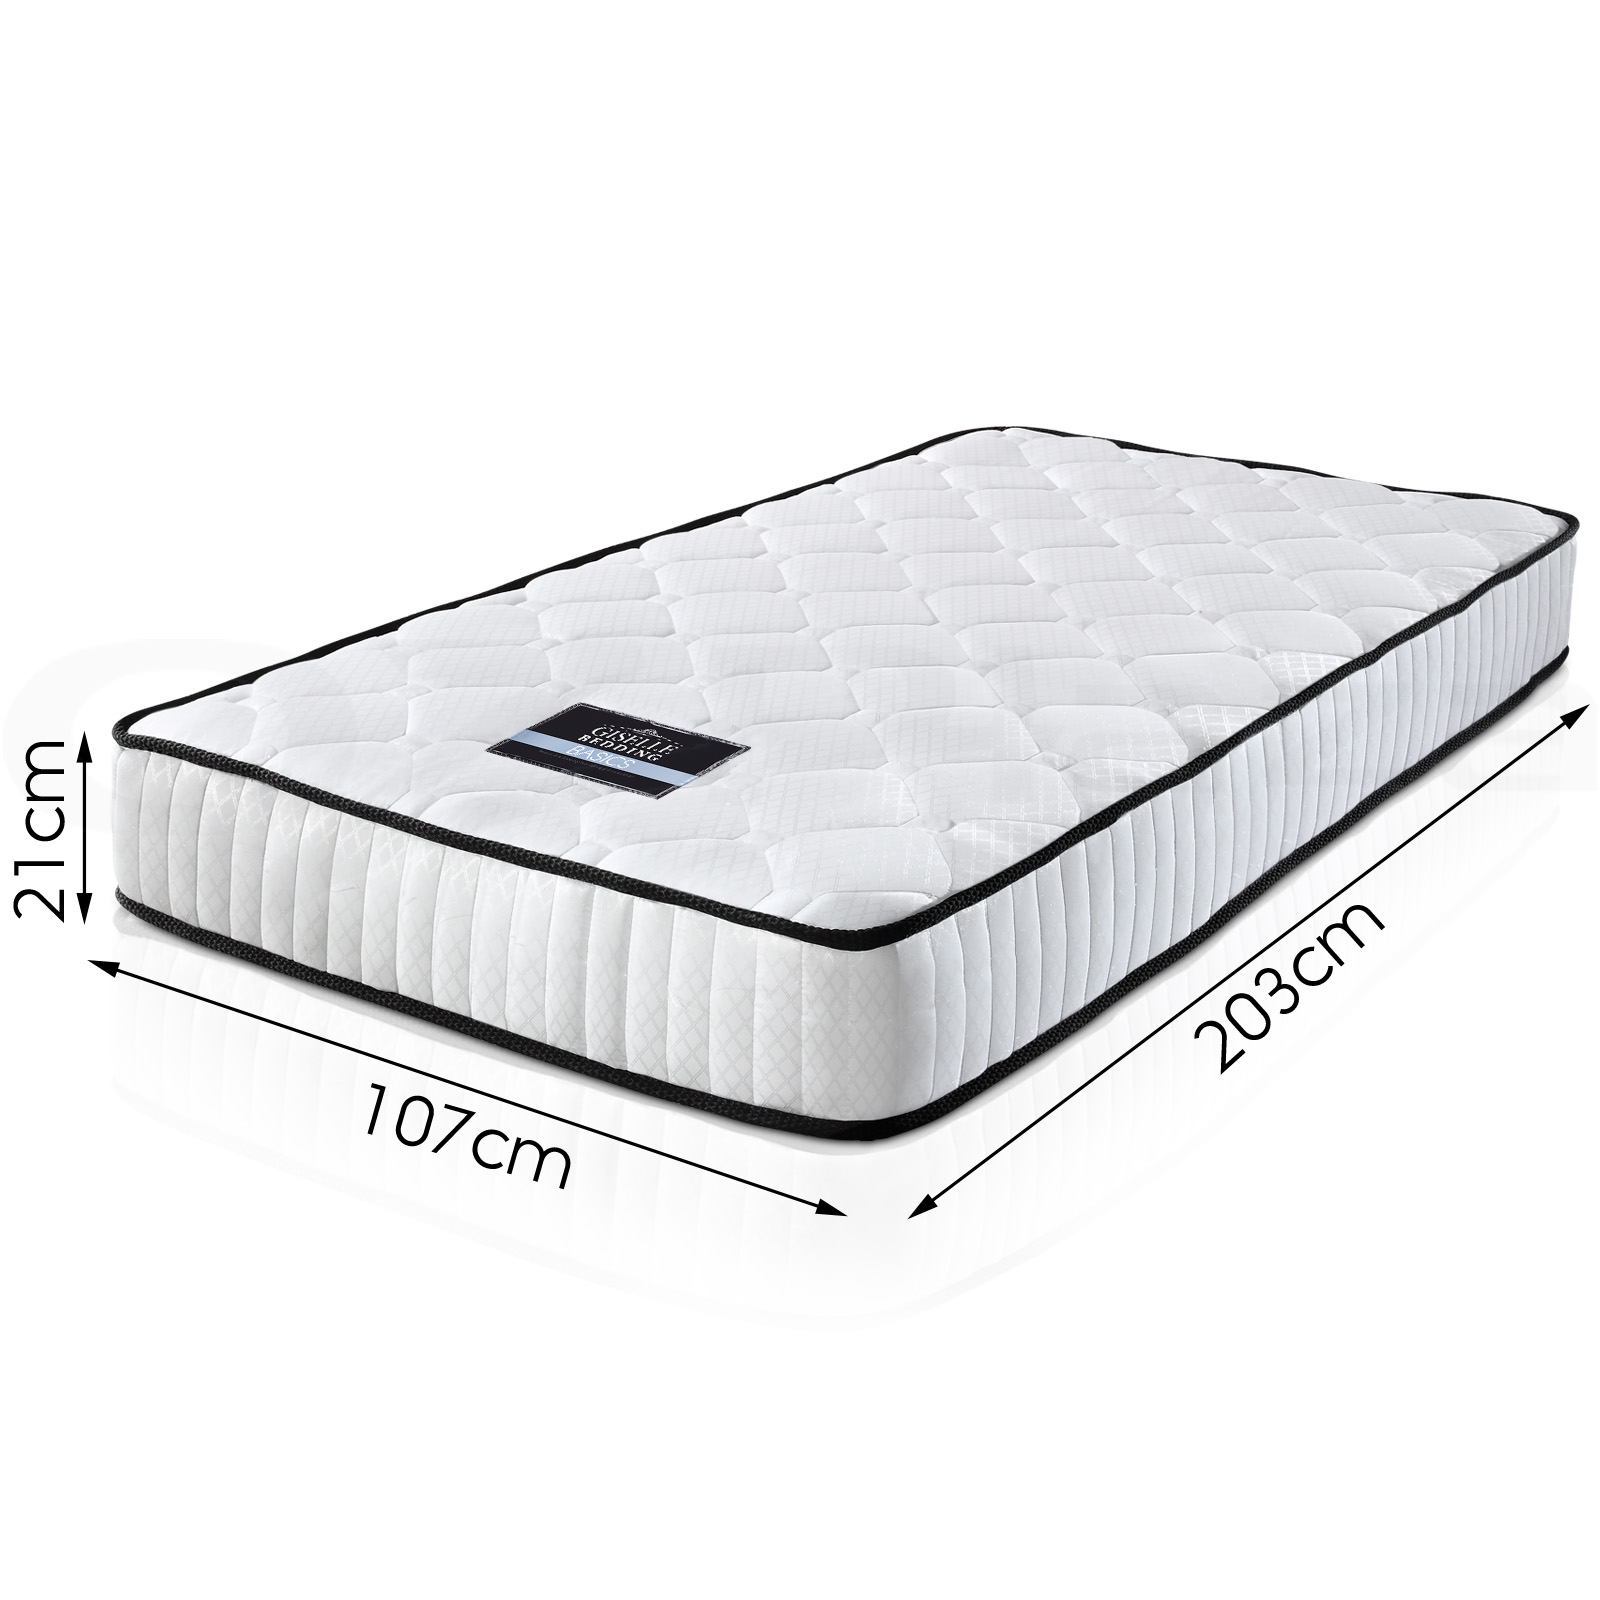 Giselle Bedding Mattress Queen Double King Single Size Bed